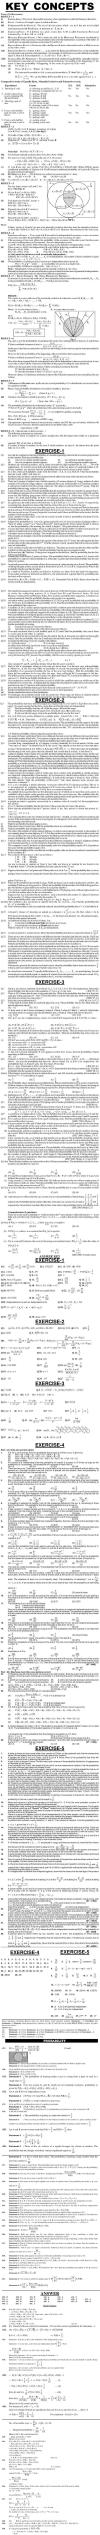 Maths Study Material - Chapter 6